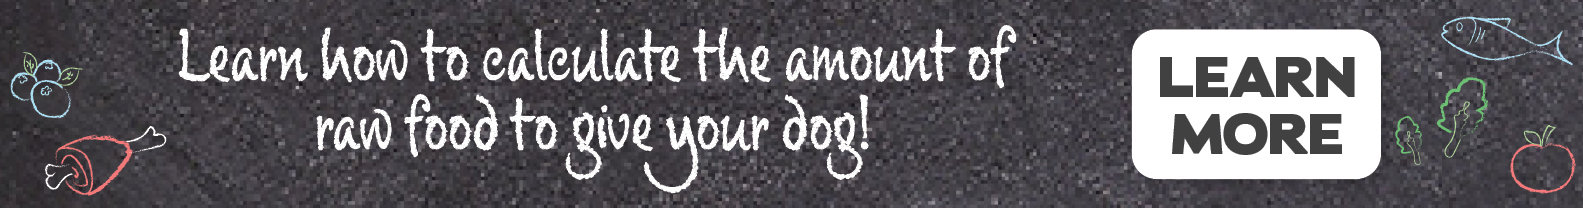 Learn how to calculate the amount of raw food to give your dog!